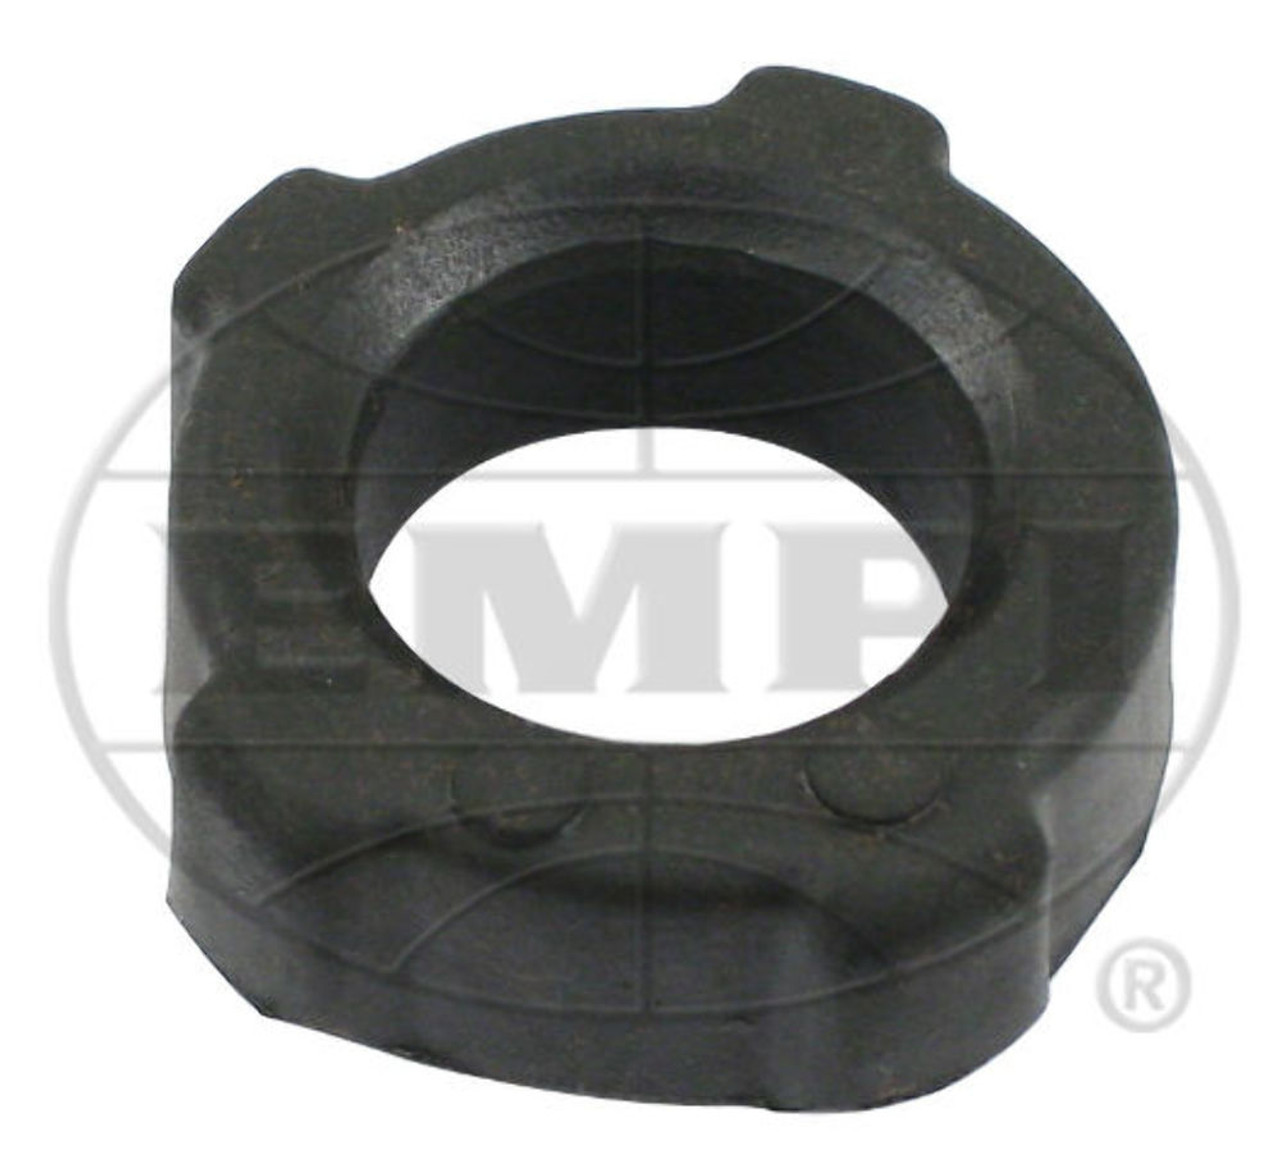 Spring Plate Bushing R/Outer L/Inner, Each, 311 511 246, Fits VW Type 1 60-68